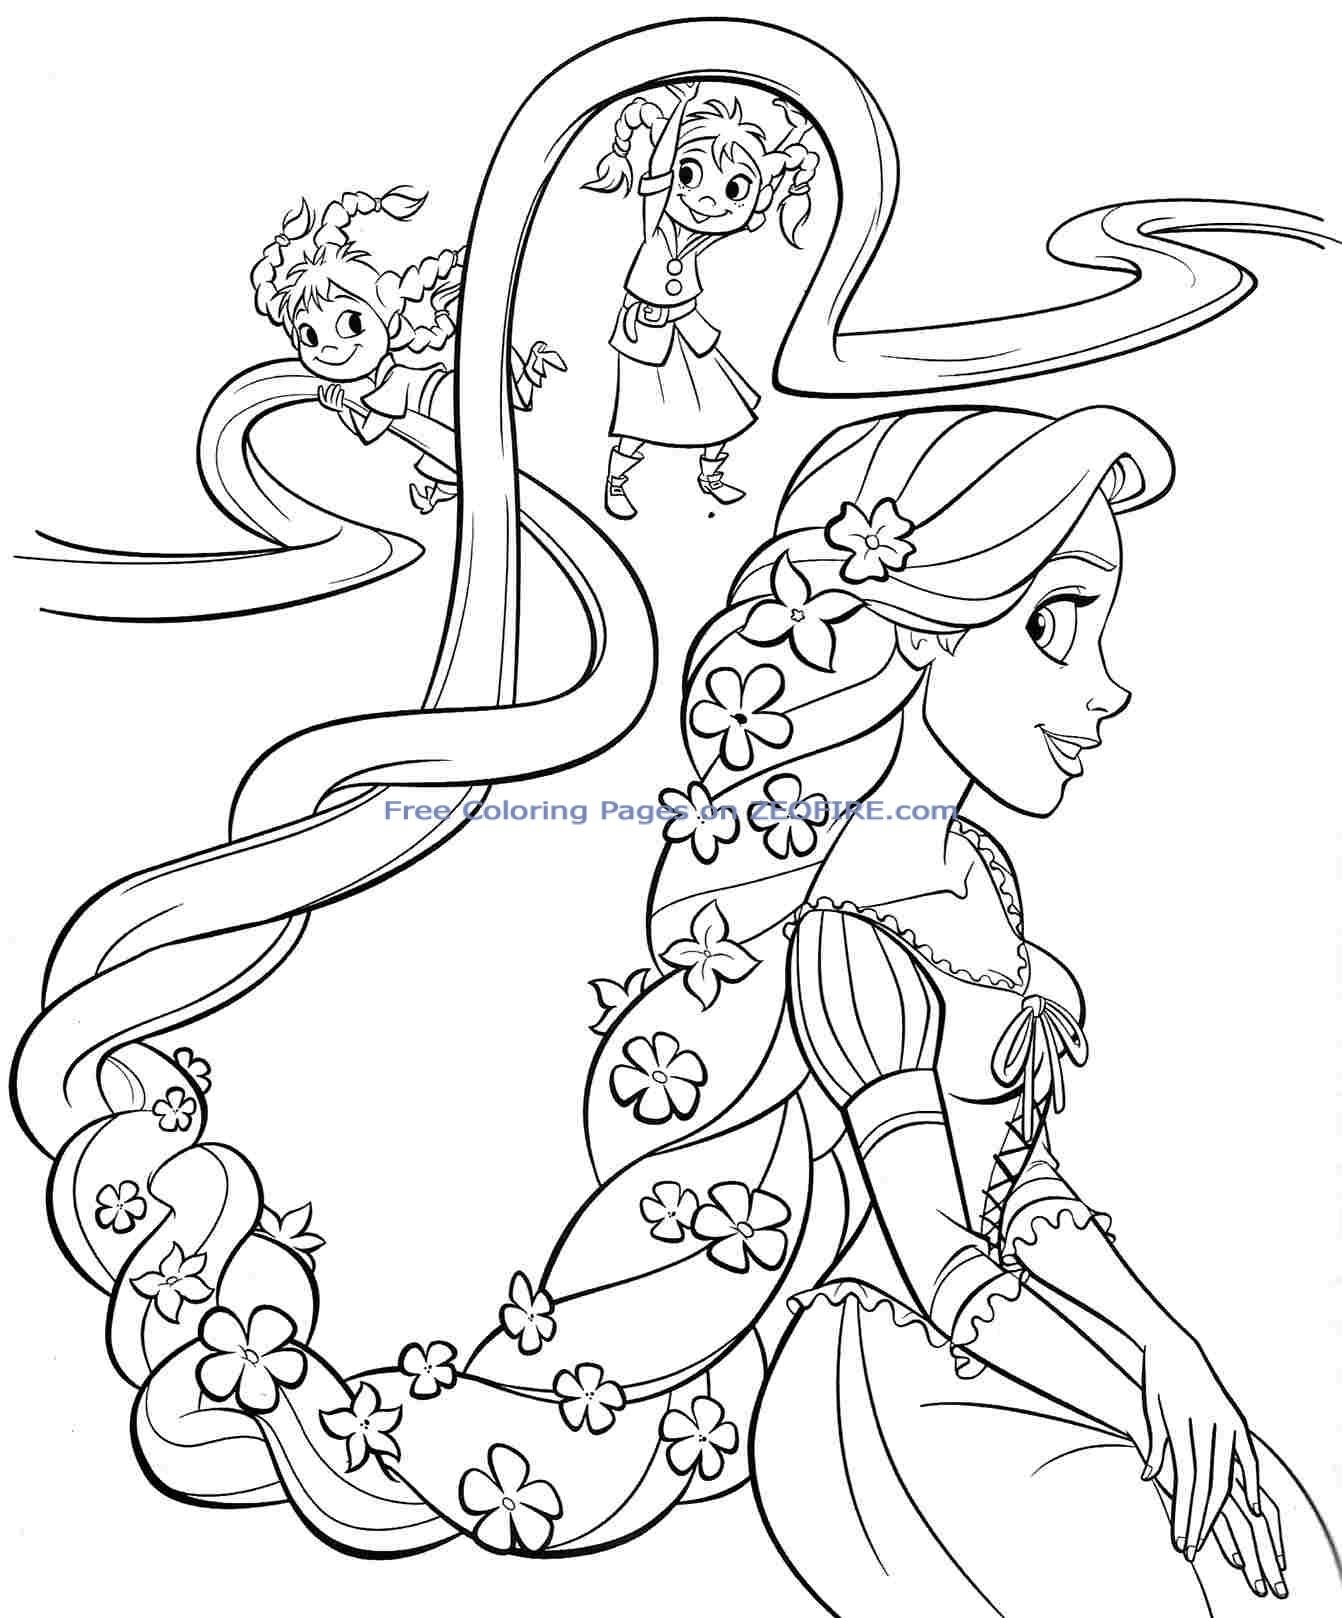 Walt Disney Coloring Pages - Princess jasmin - Walt Disney-Figuren ... | 1618x1342